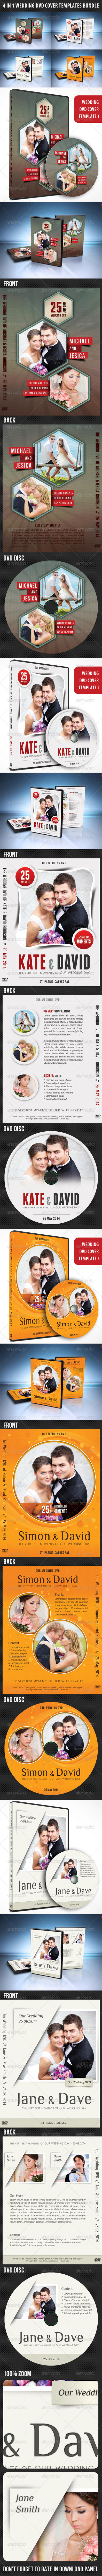 GraphicRiver 4 in 1 Wedding DVD Cover Templates Bundle 7686286